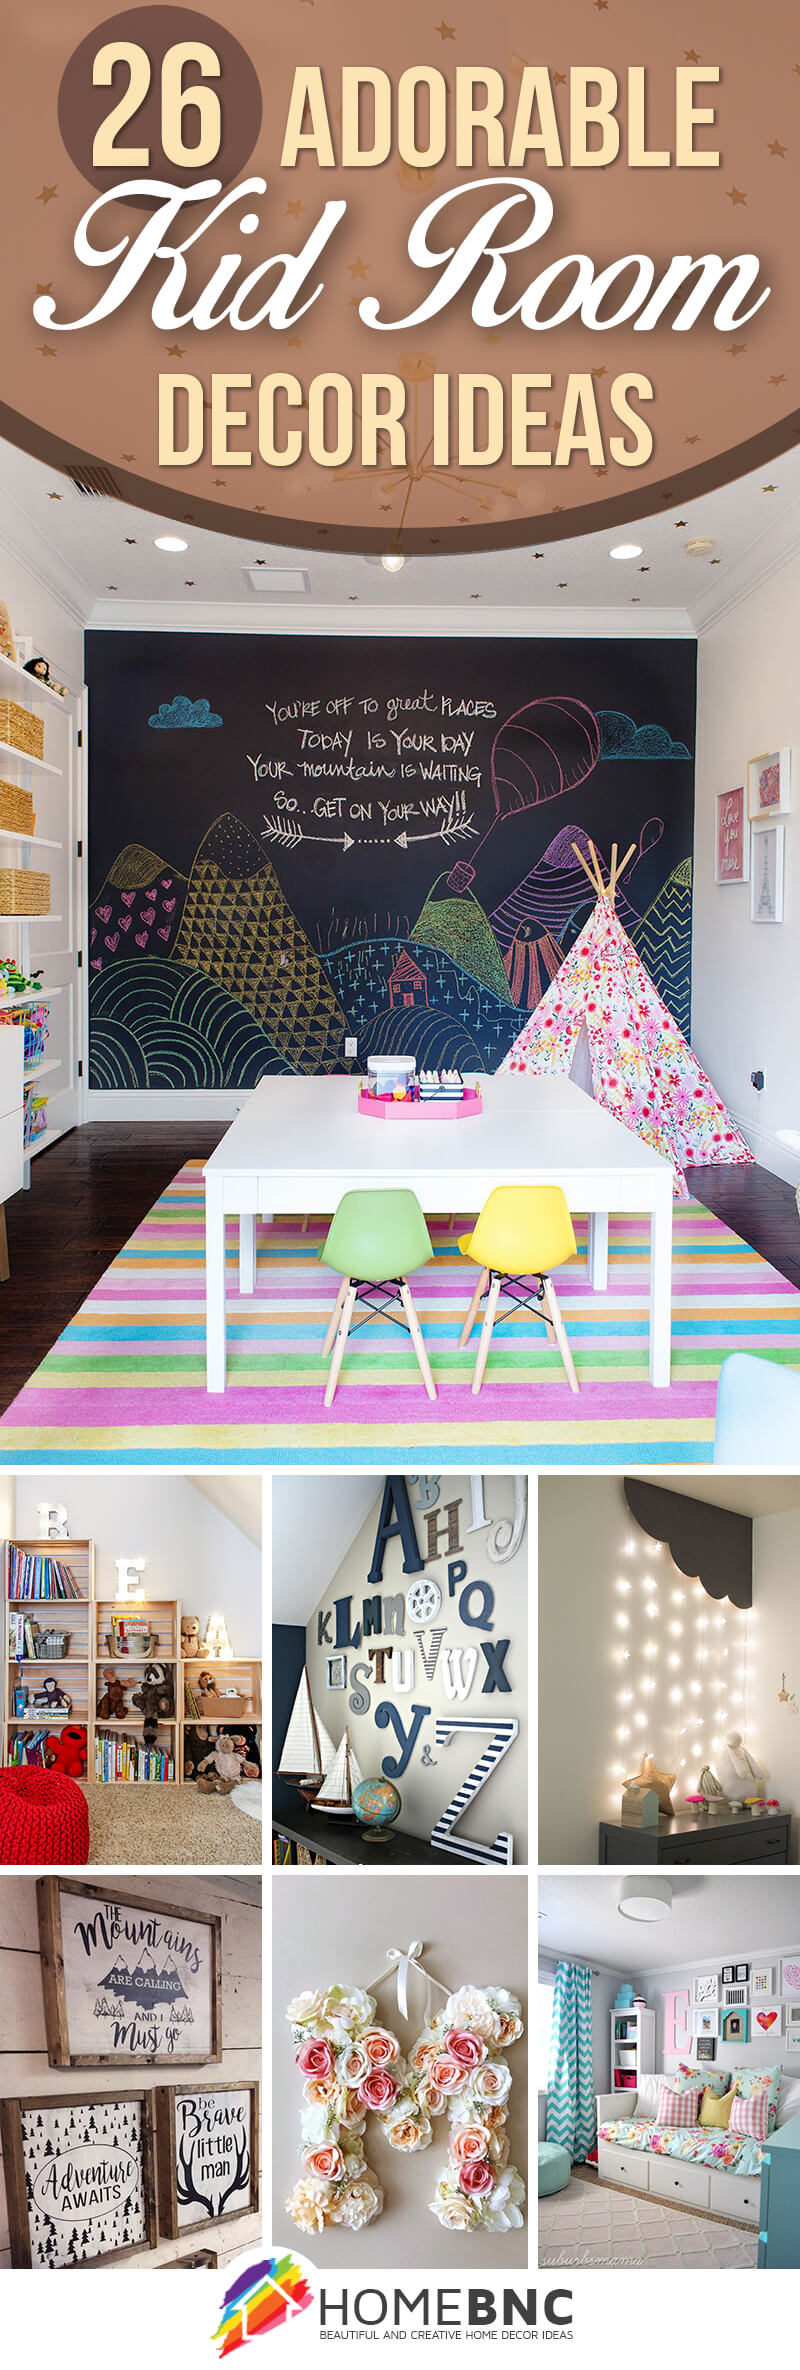 Kid Room Decor Ideas